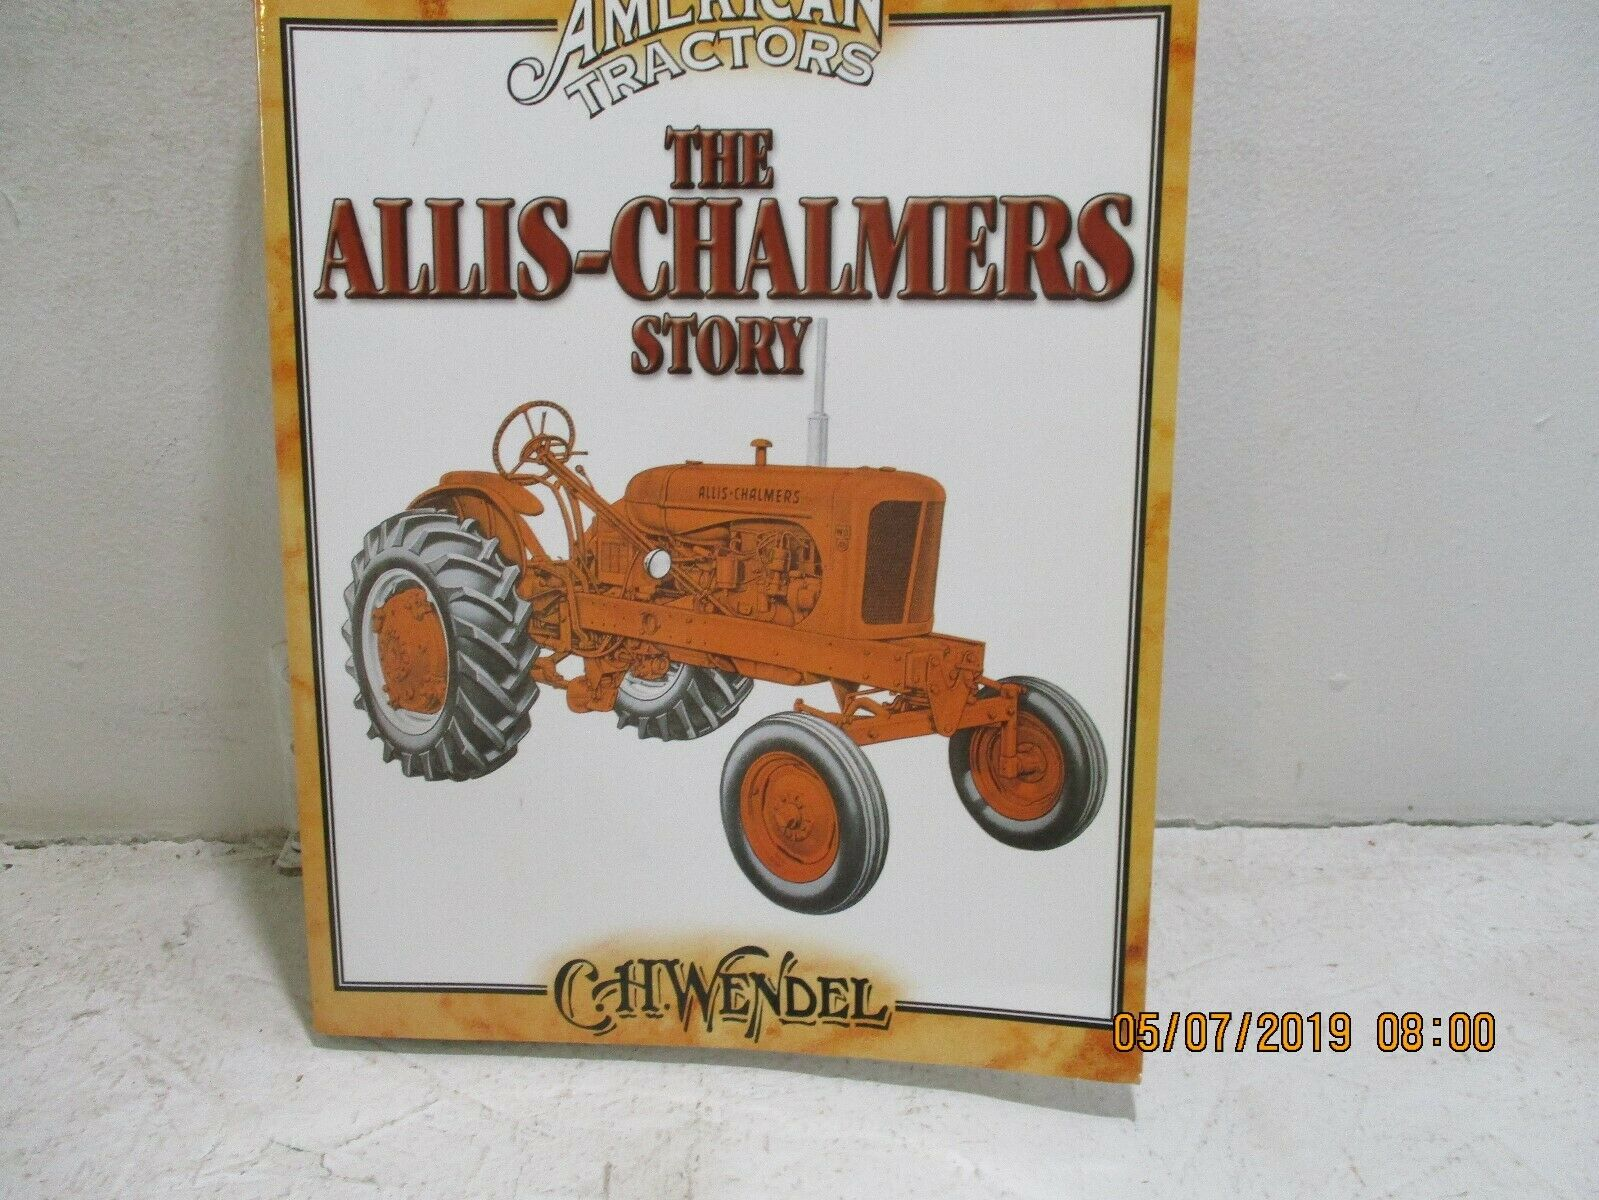 1965 allis chalmers tractor clipart picture transparent Allis-Chalmers Story : Classic American Tractors by C. H. Wendel (2004,  Paperback) picture transparent